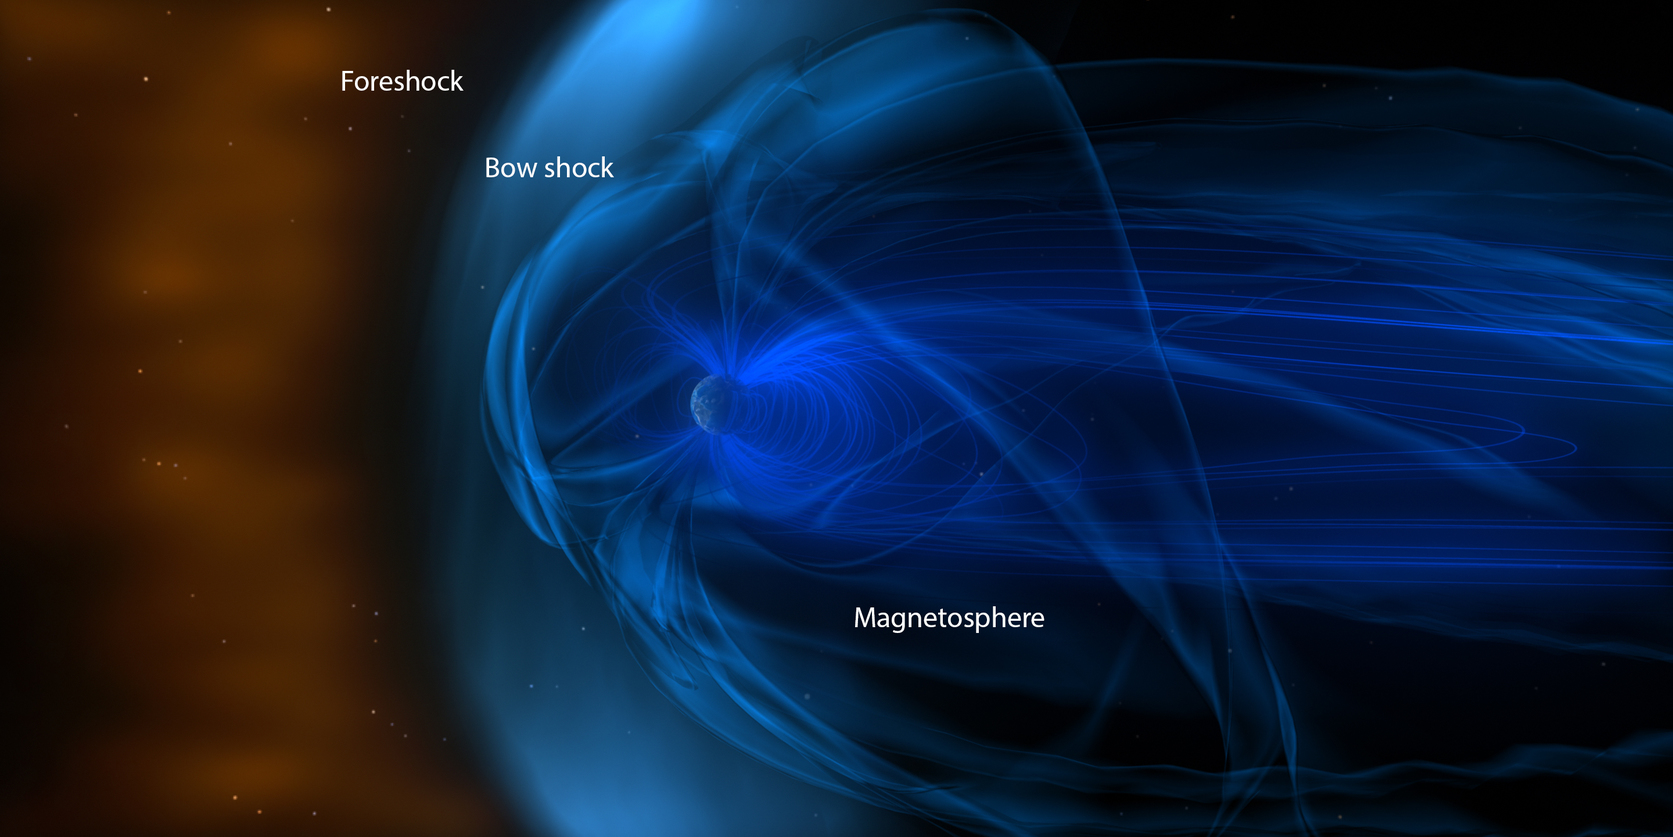 makes one earth like planet more habitable than another the earth s magnetosphere protects our atmosphere from the erosive power of the solar wind but out convection in earth s core that field would not